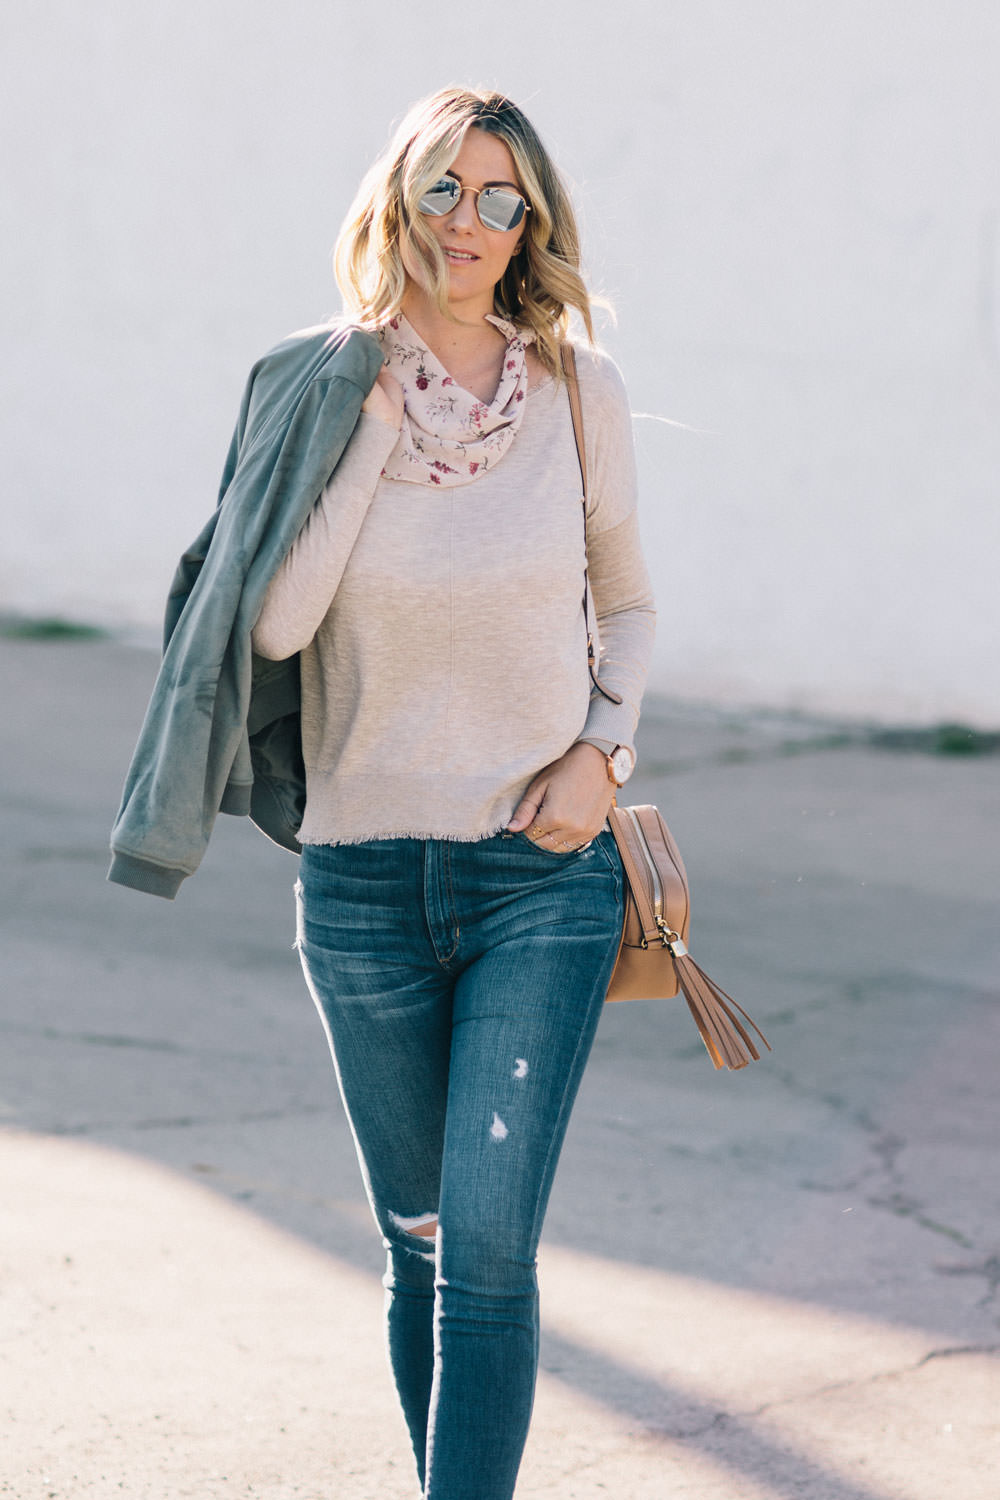 Dash of Darling styles a spring transition outfit with Stitch Fix